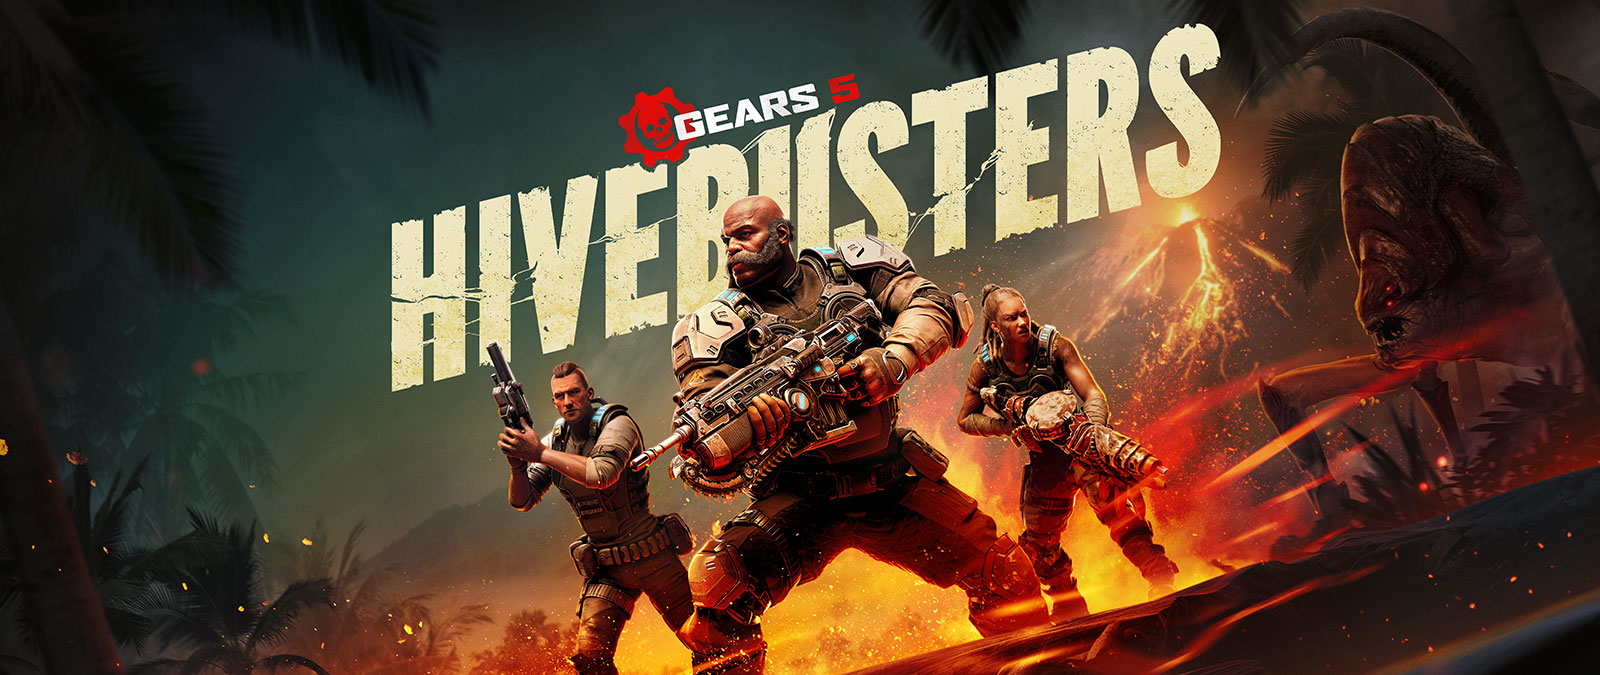 Gears 5 Hivebusters, three characters from Gears 5 with weapons in front of a volcano